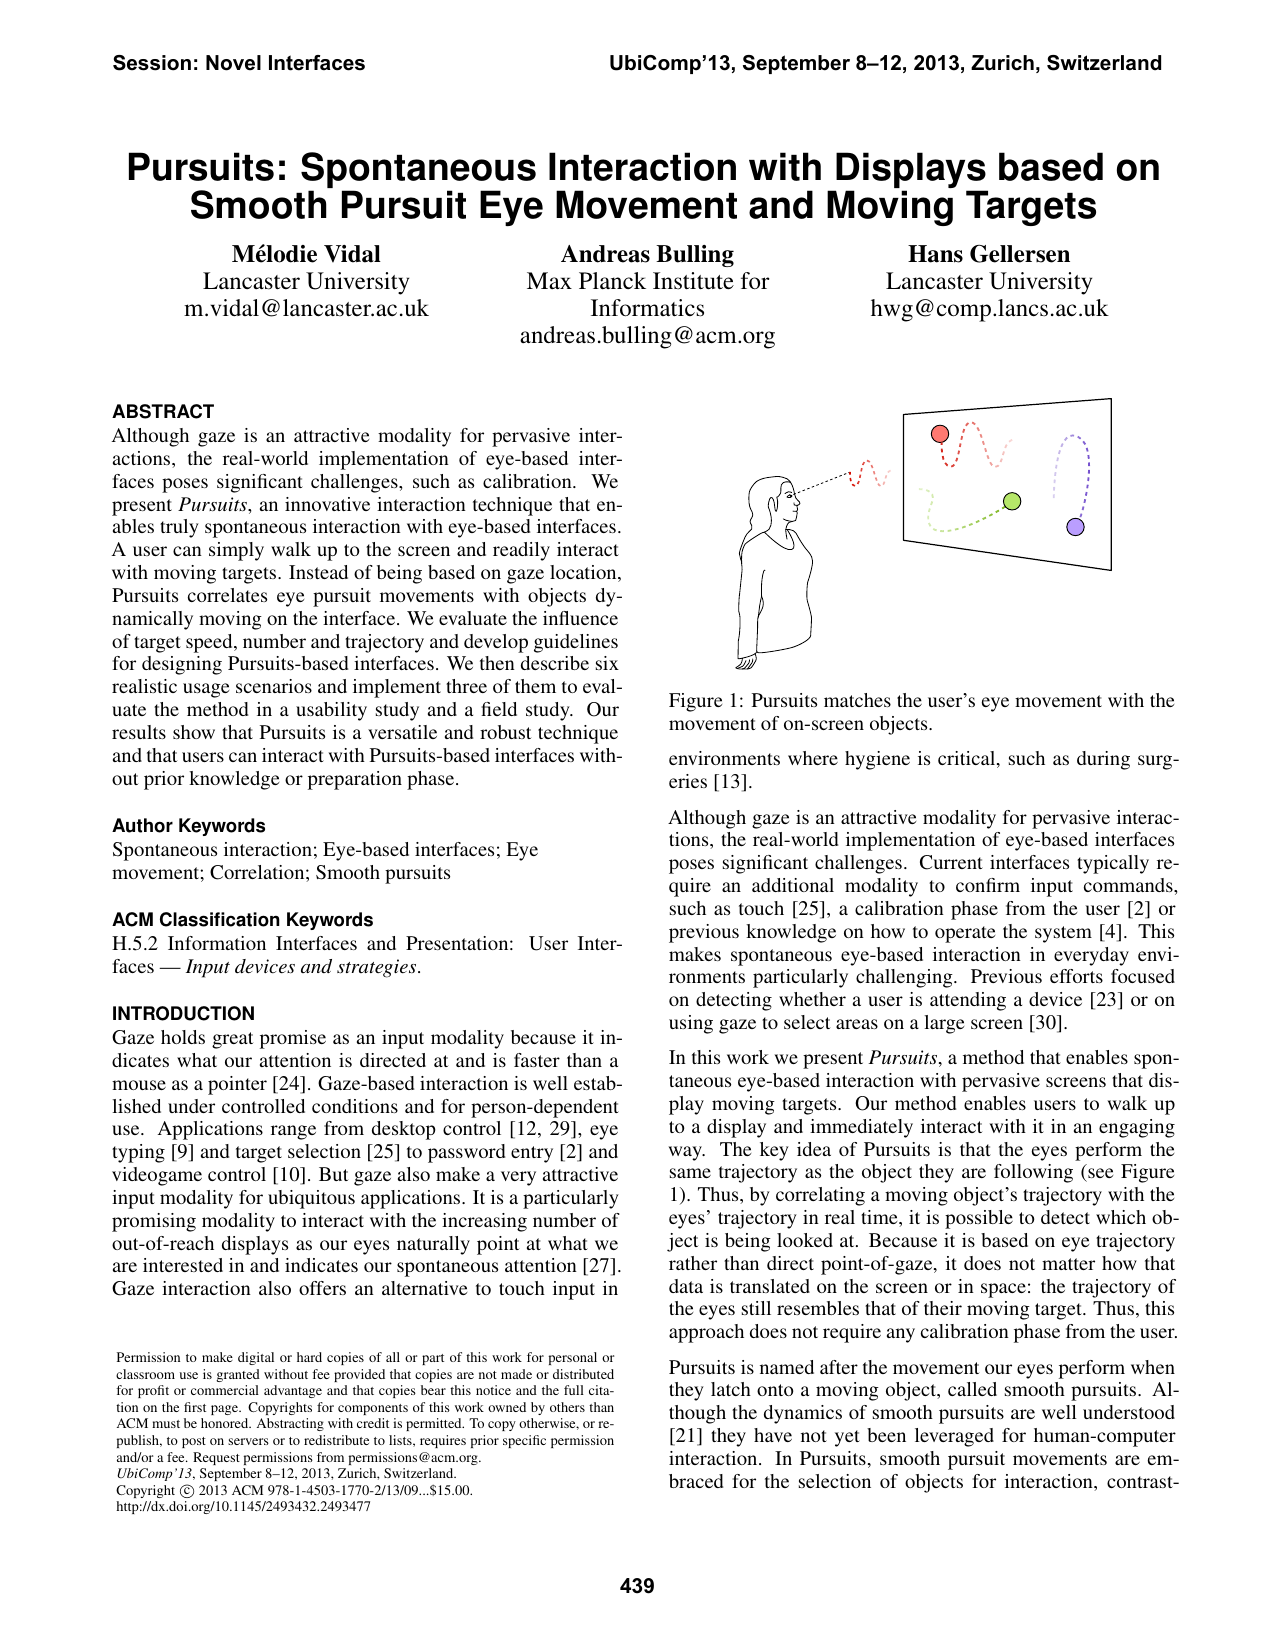 Pursuits: Spontaneous Interaction with Displays based on Smooth Pursuit Eye Movement and Moving Targets